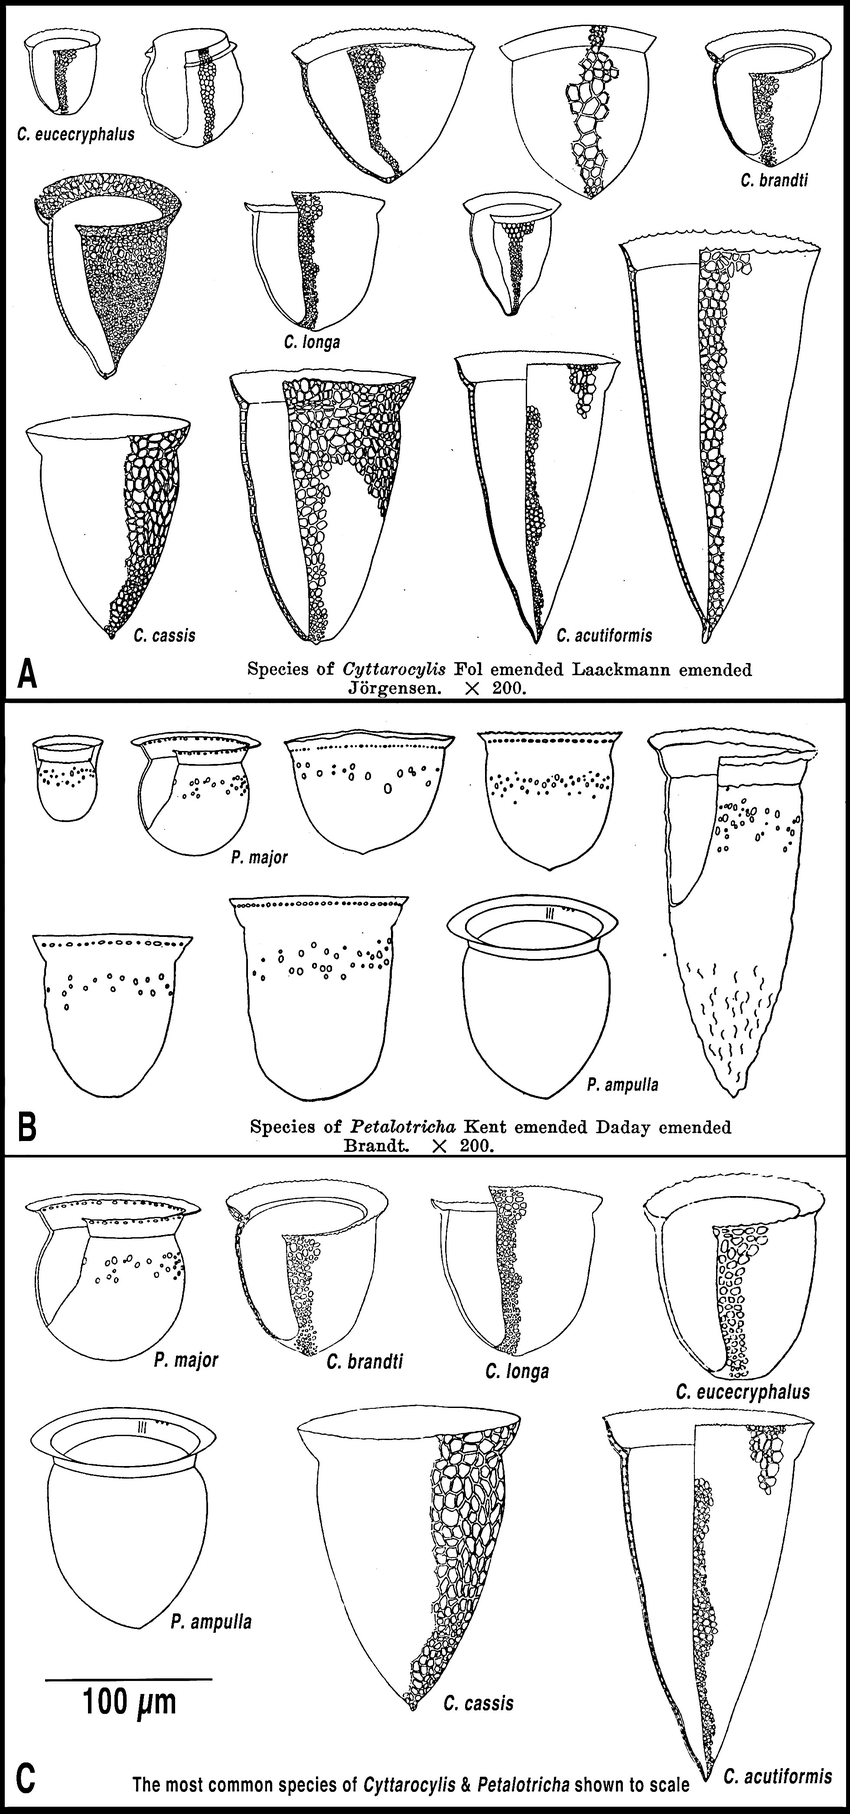 hight resolution of the illustrations in kofoid and campbell 1929 of species of cyttarocylis a